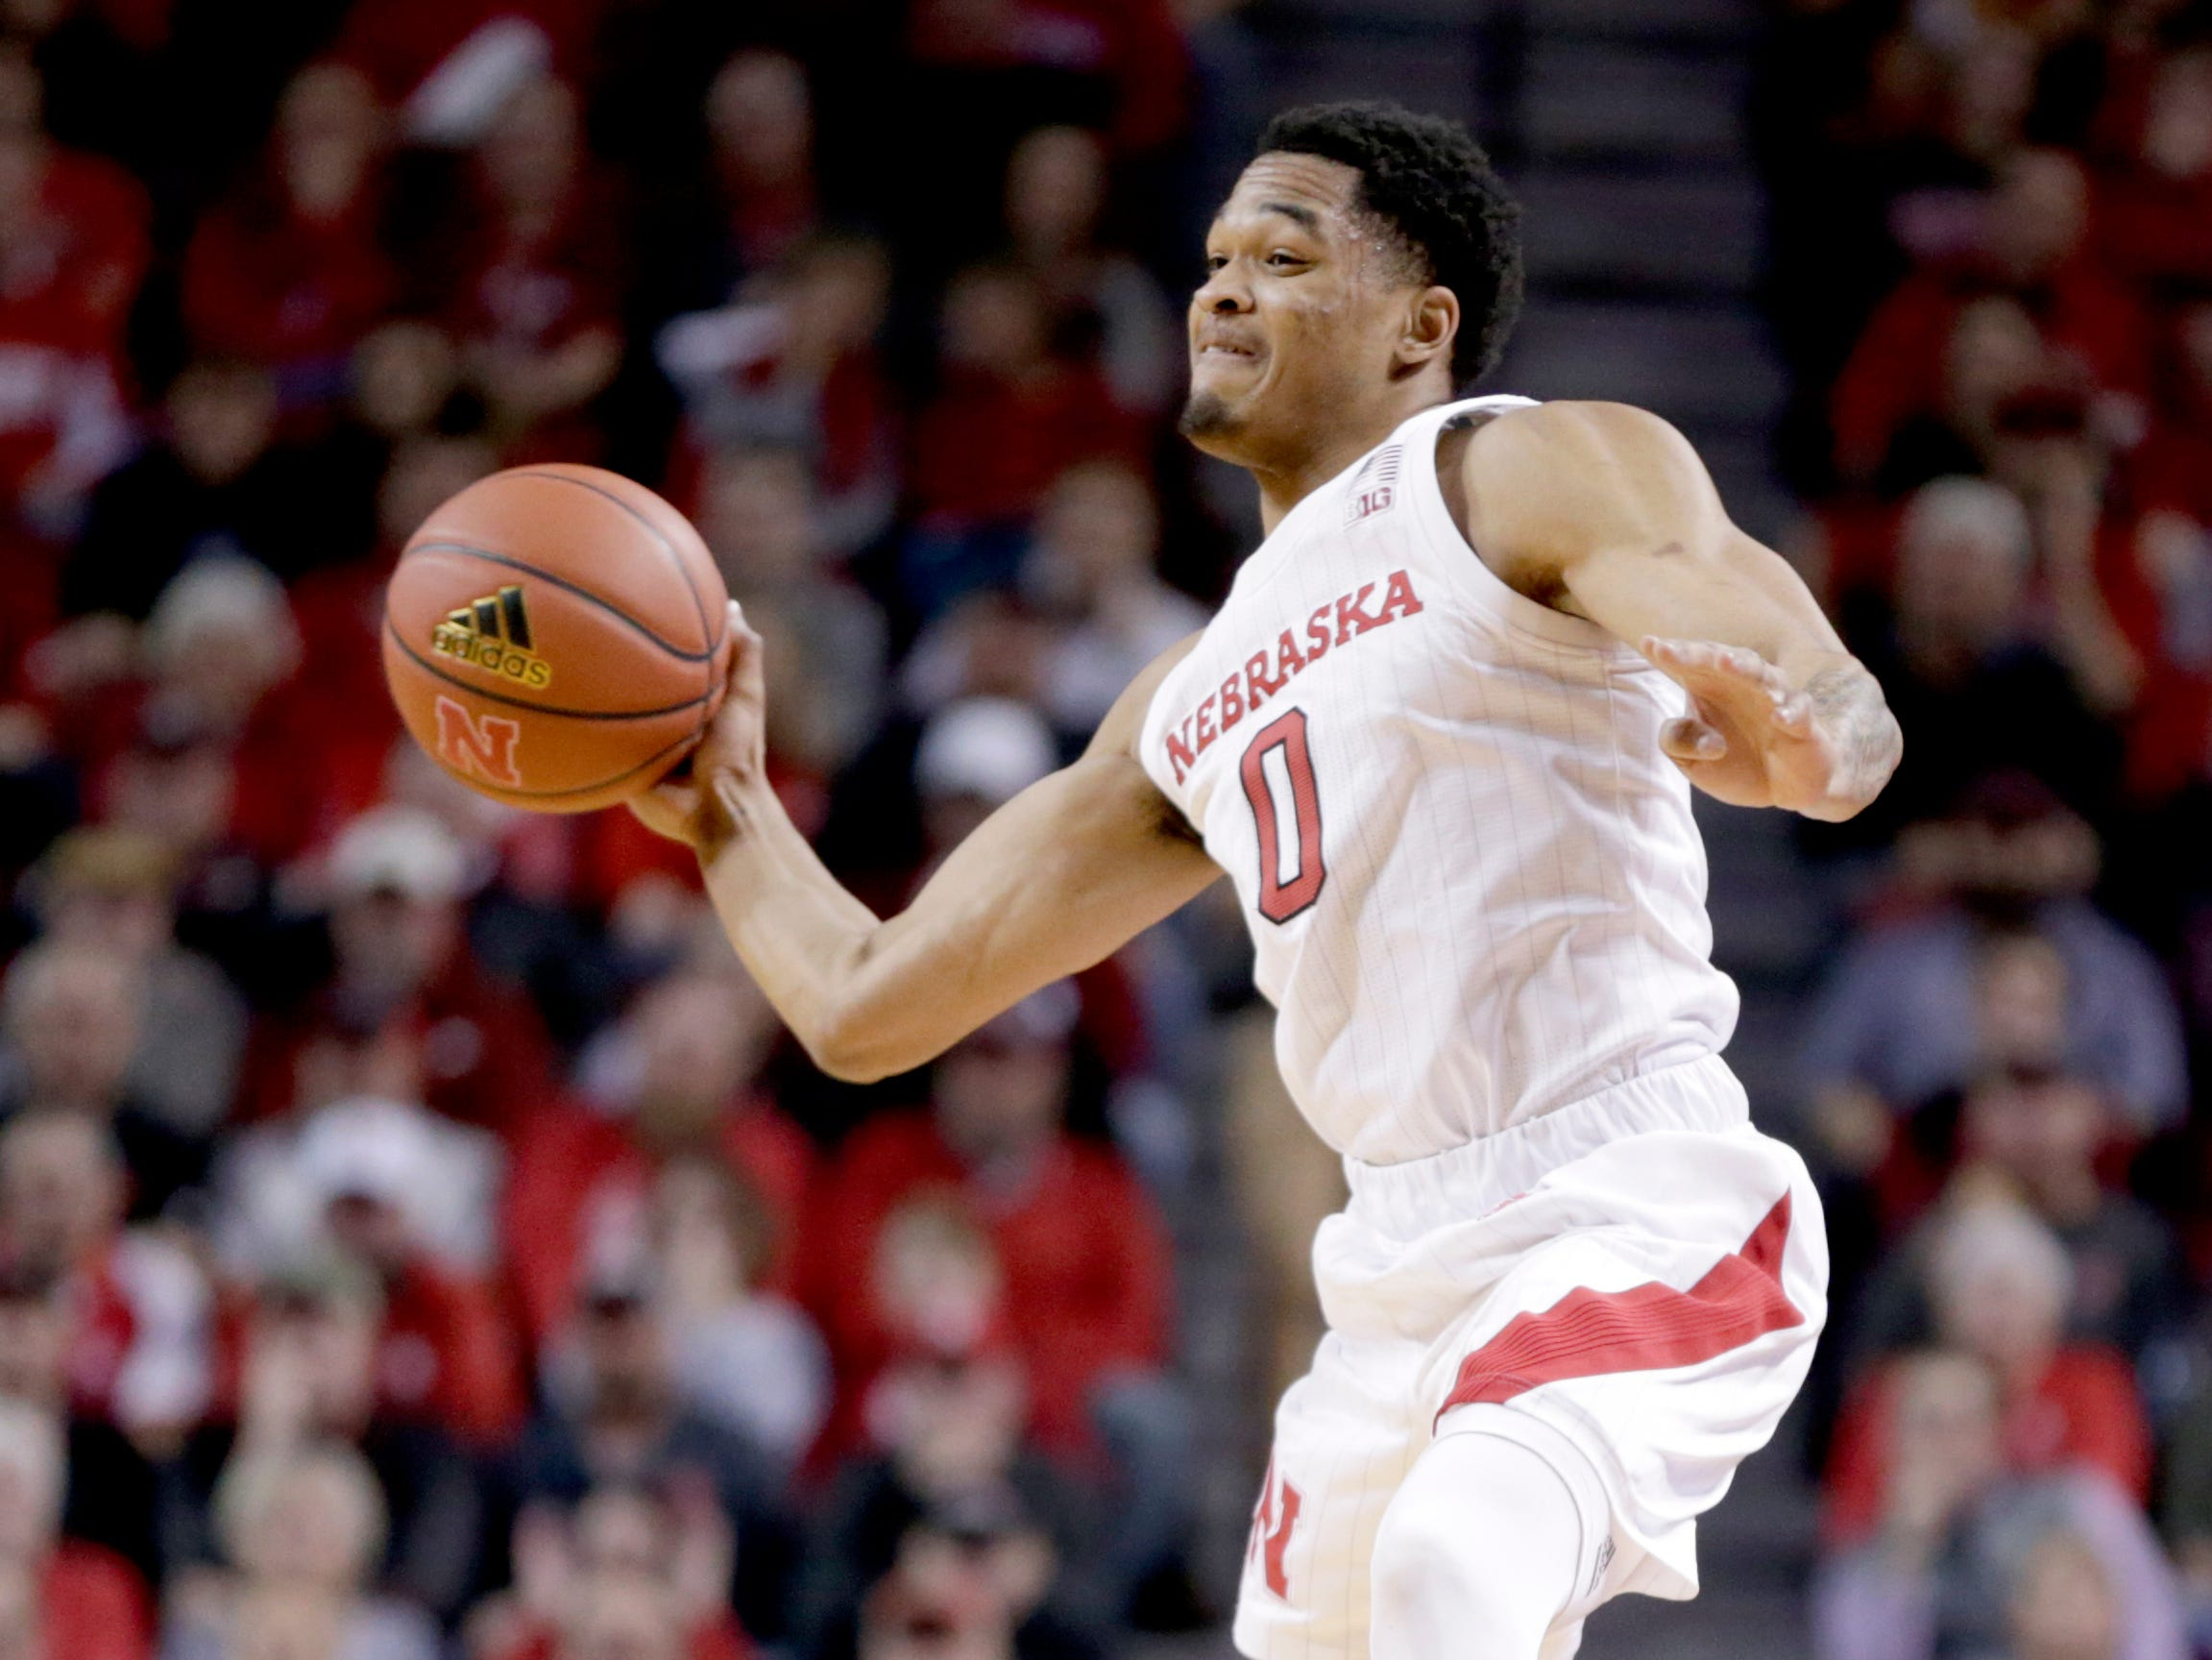 Nebraska's James Palmer Jr. (0) passes the ball during the first half of an NCAA college basketball game against Penn State in Lincoln, Neb., Thursday, Jan. 10, 2019. (AP Photo/Nati Harnik)